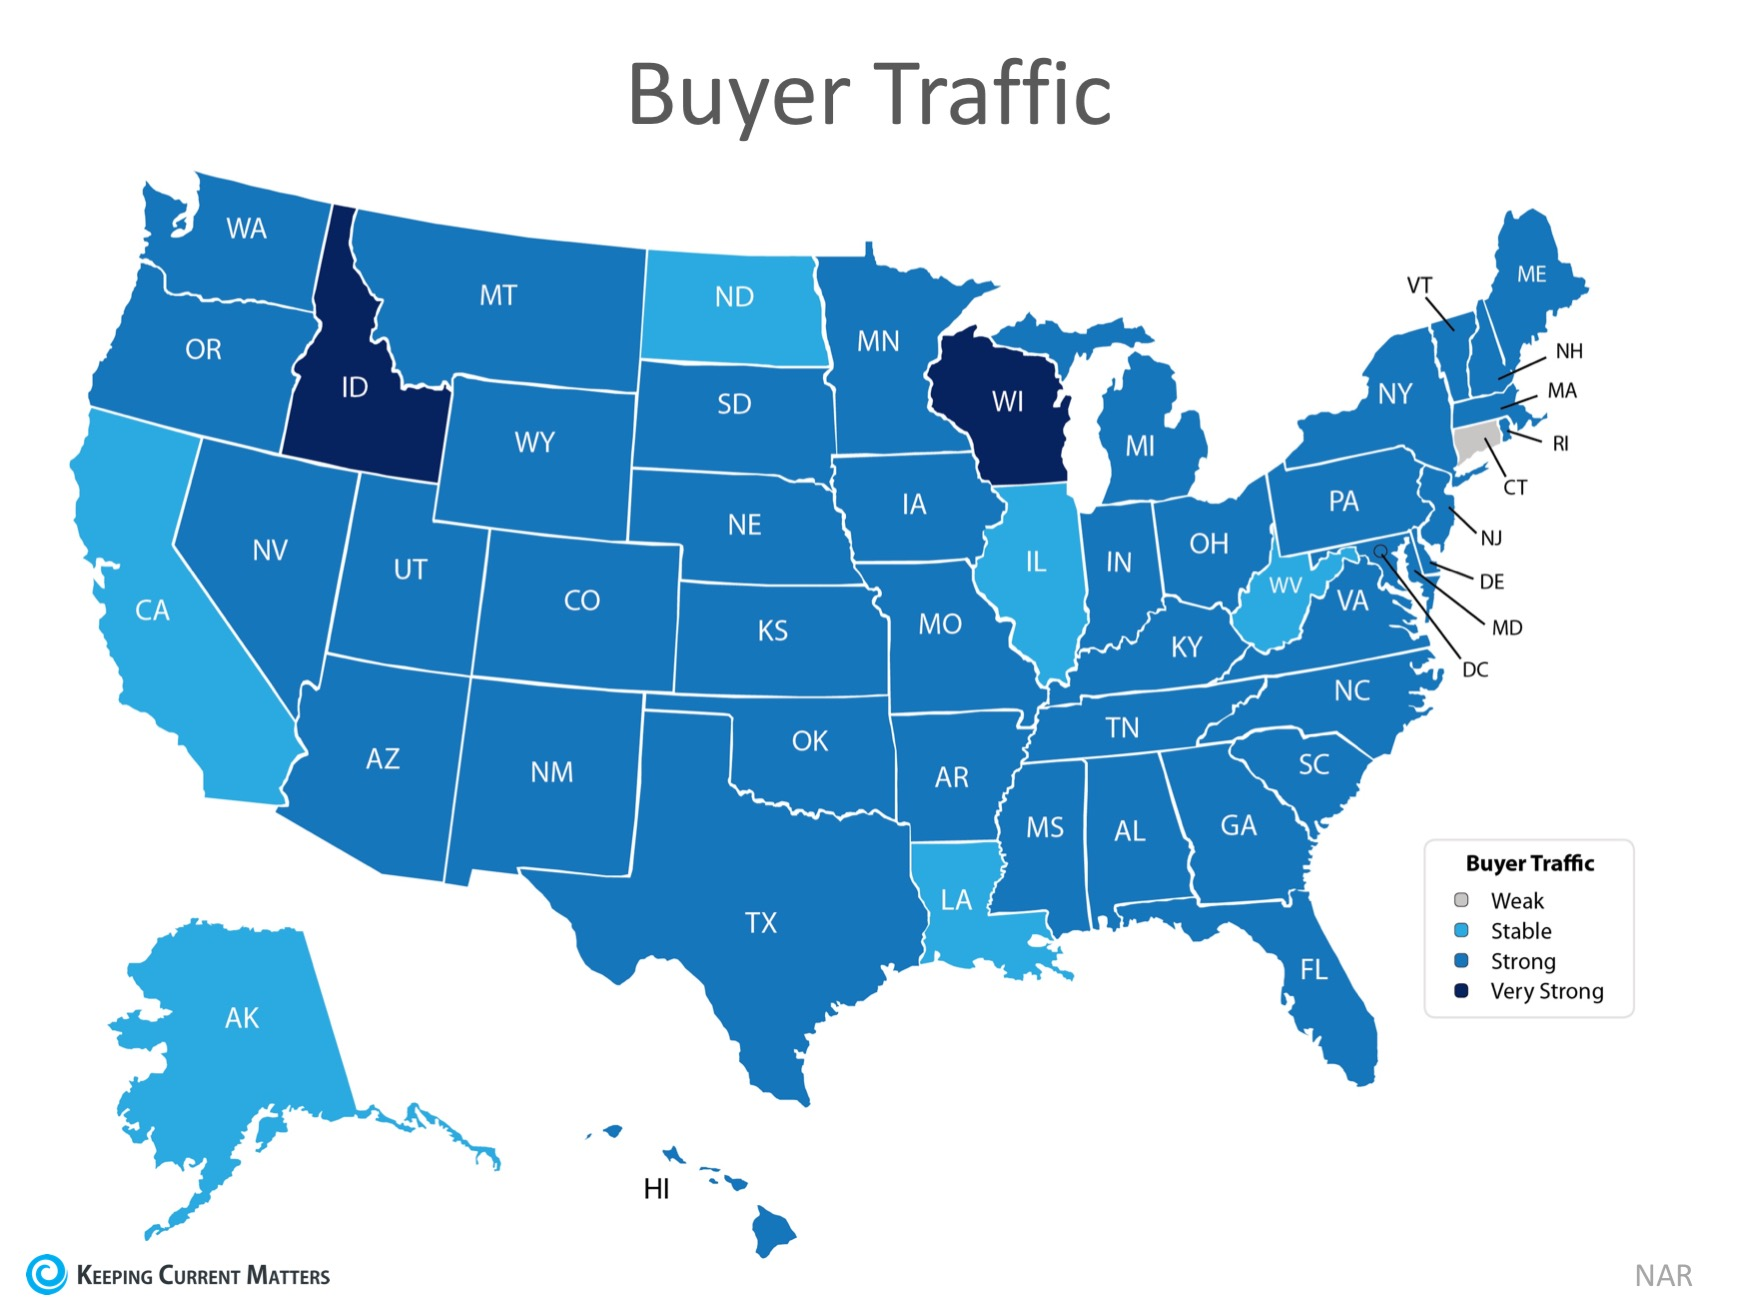 How Does the Supply of Homes for Sale Impact Buyer Demand? | Keeping Current Matters